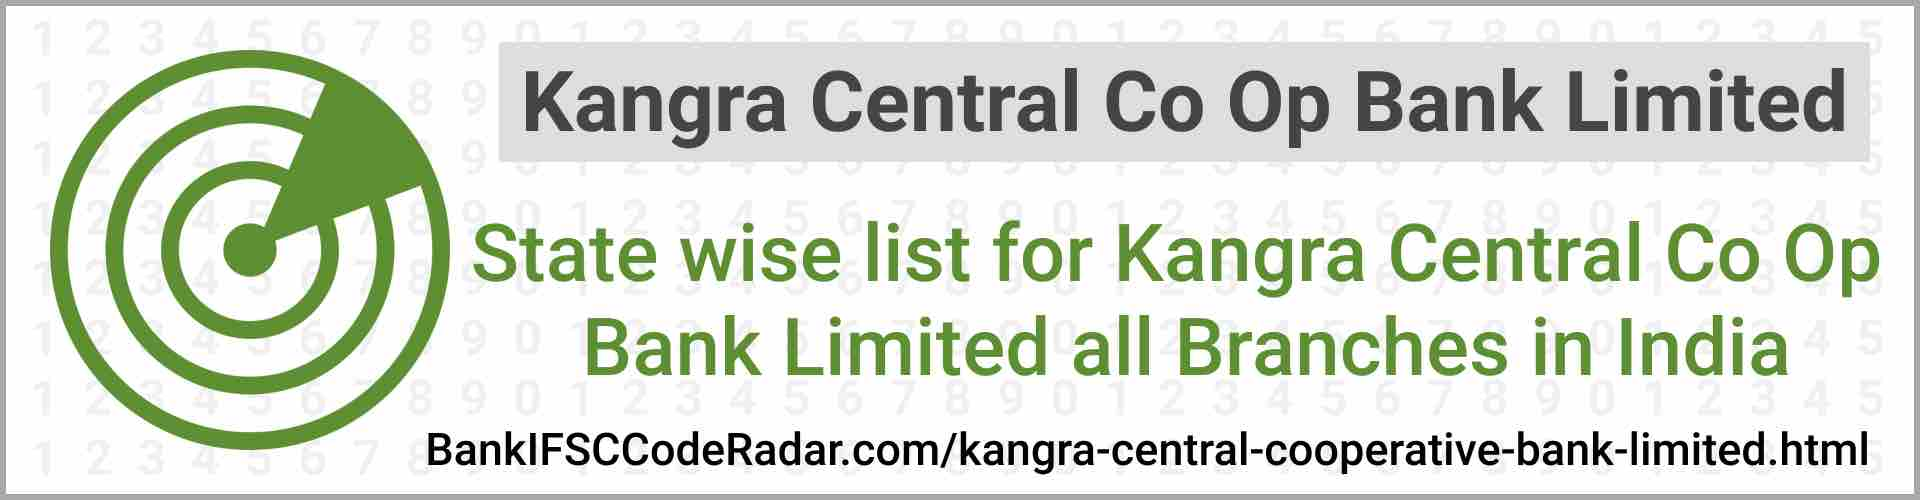 Kangra Central Cooperative Bank Limited All Branches India